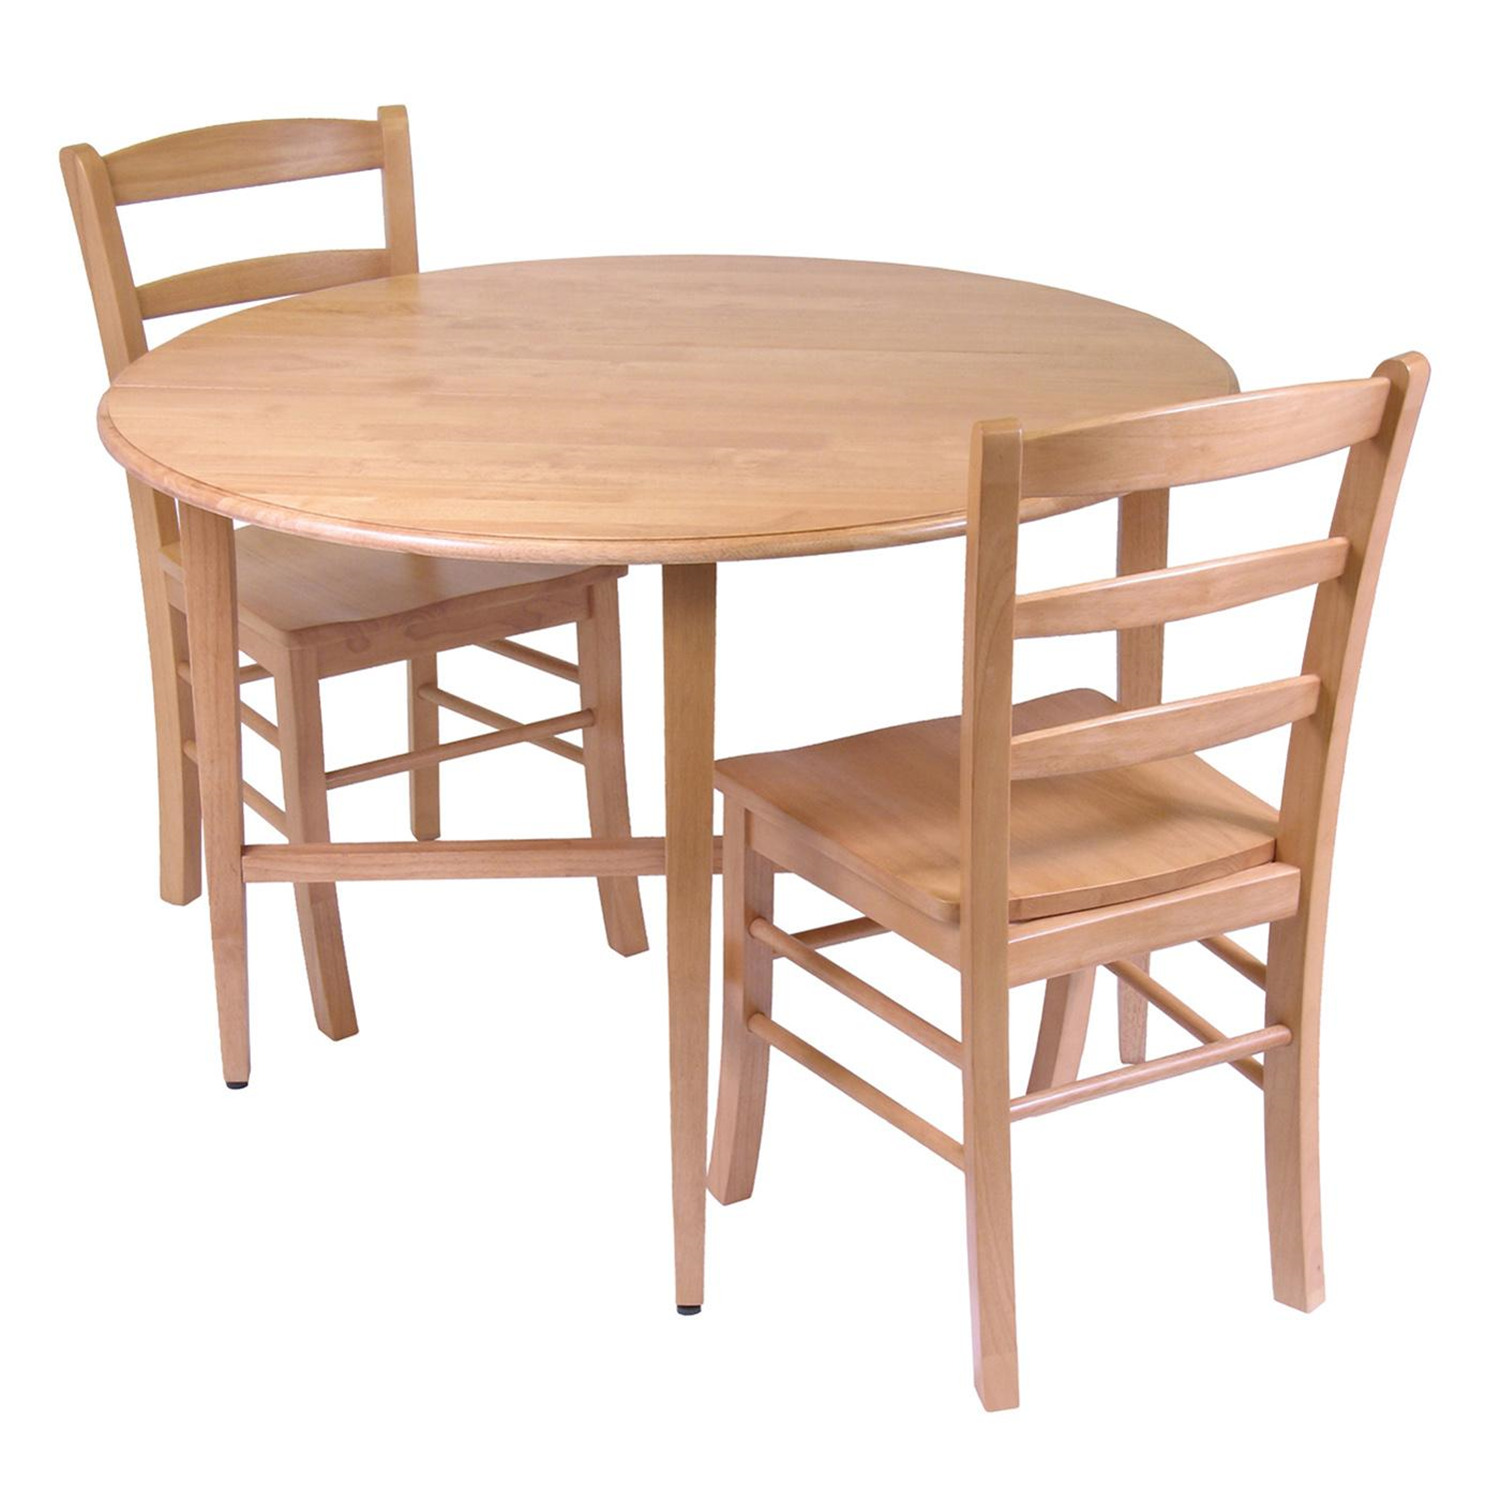 Hannah 3pc Dining Set Drop Leaf Table with 2 Ladder Back  : 34342hannah3pcdiningsetdropleaftablew from www.ojcommerce.com size 1400 x 1400 jpeg 105kB